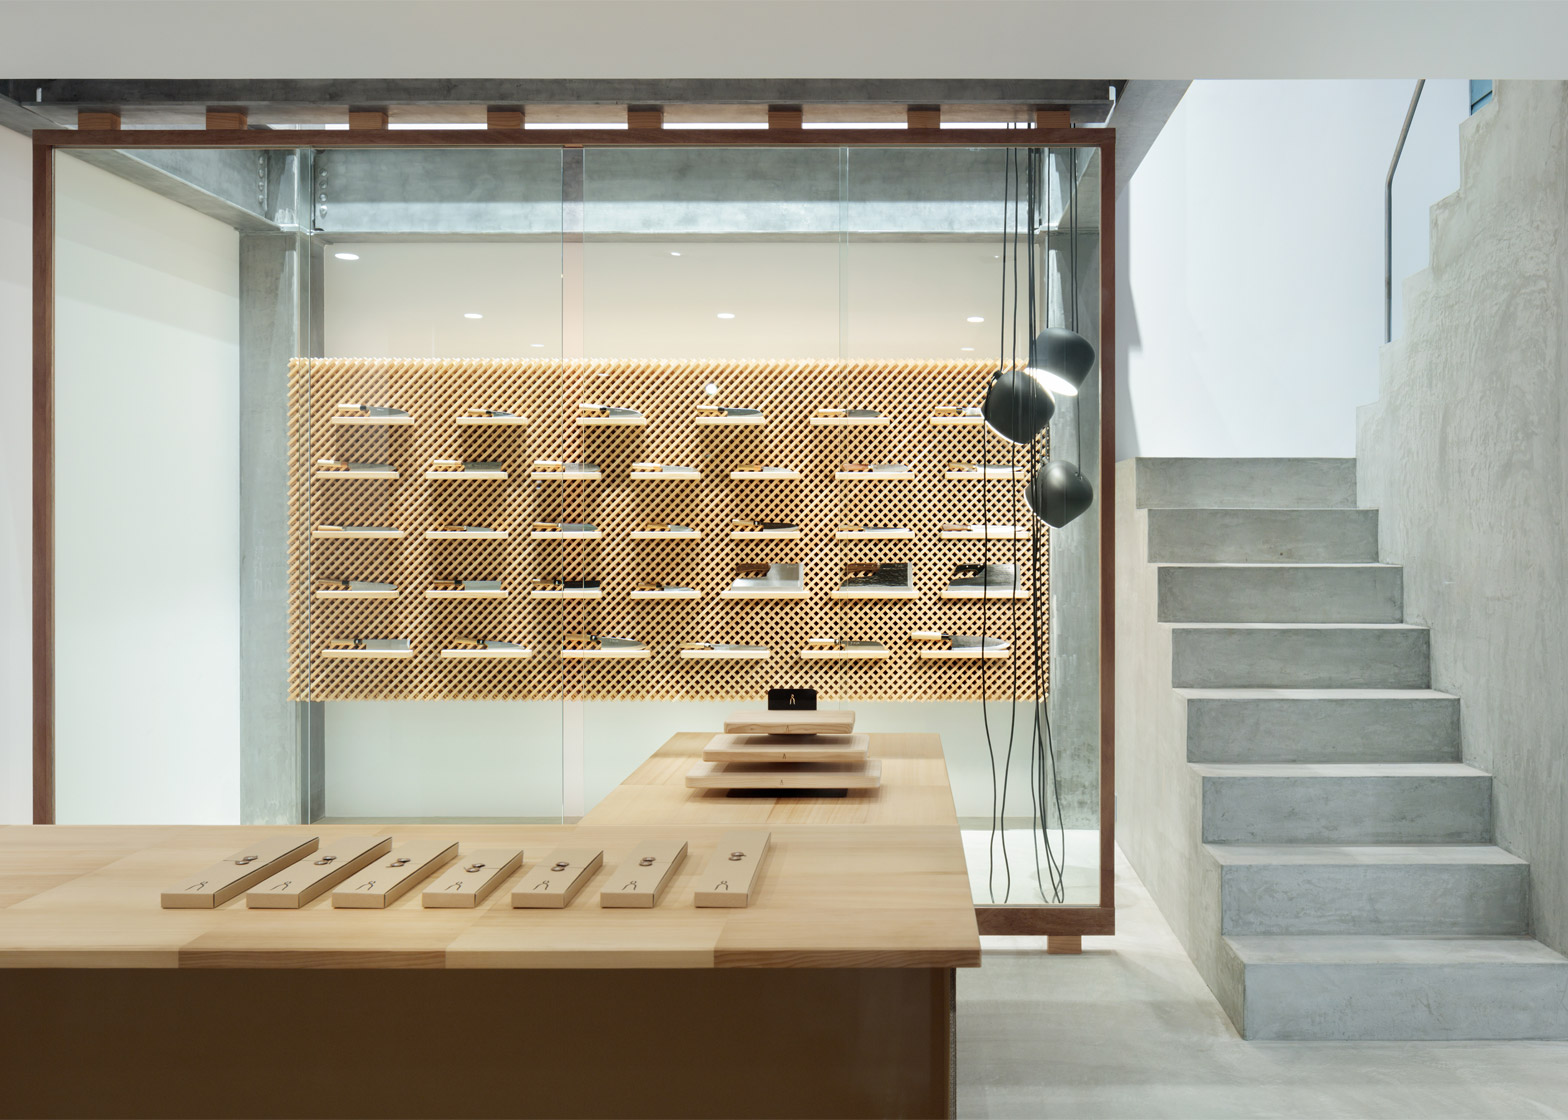 Japanese traditional Blacksmithing knife factory showroom by Yusuke Seki Design Studio